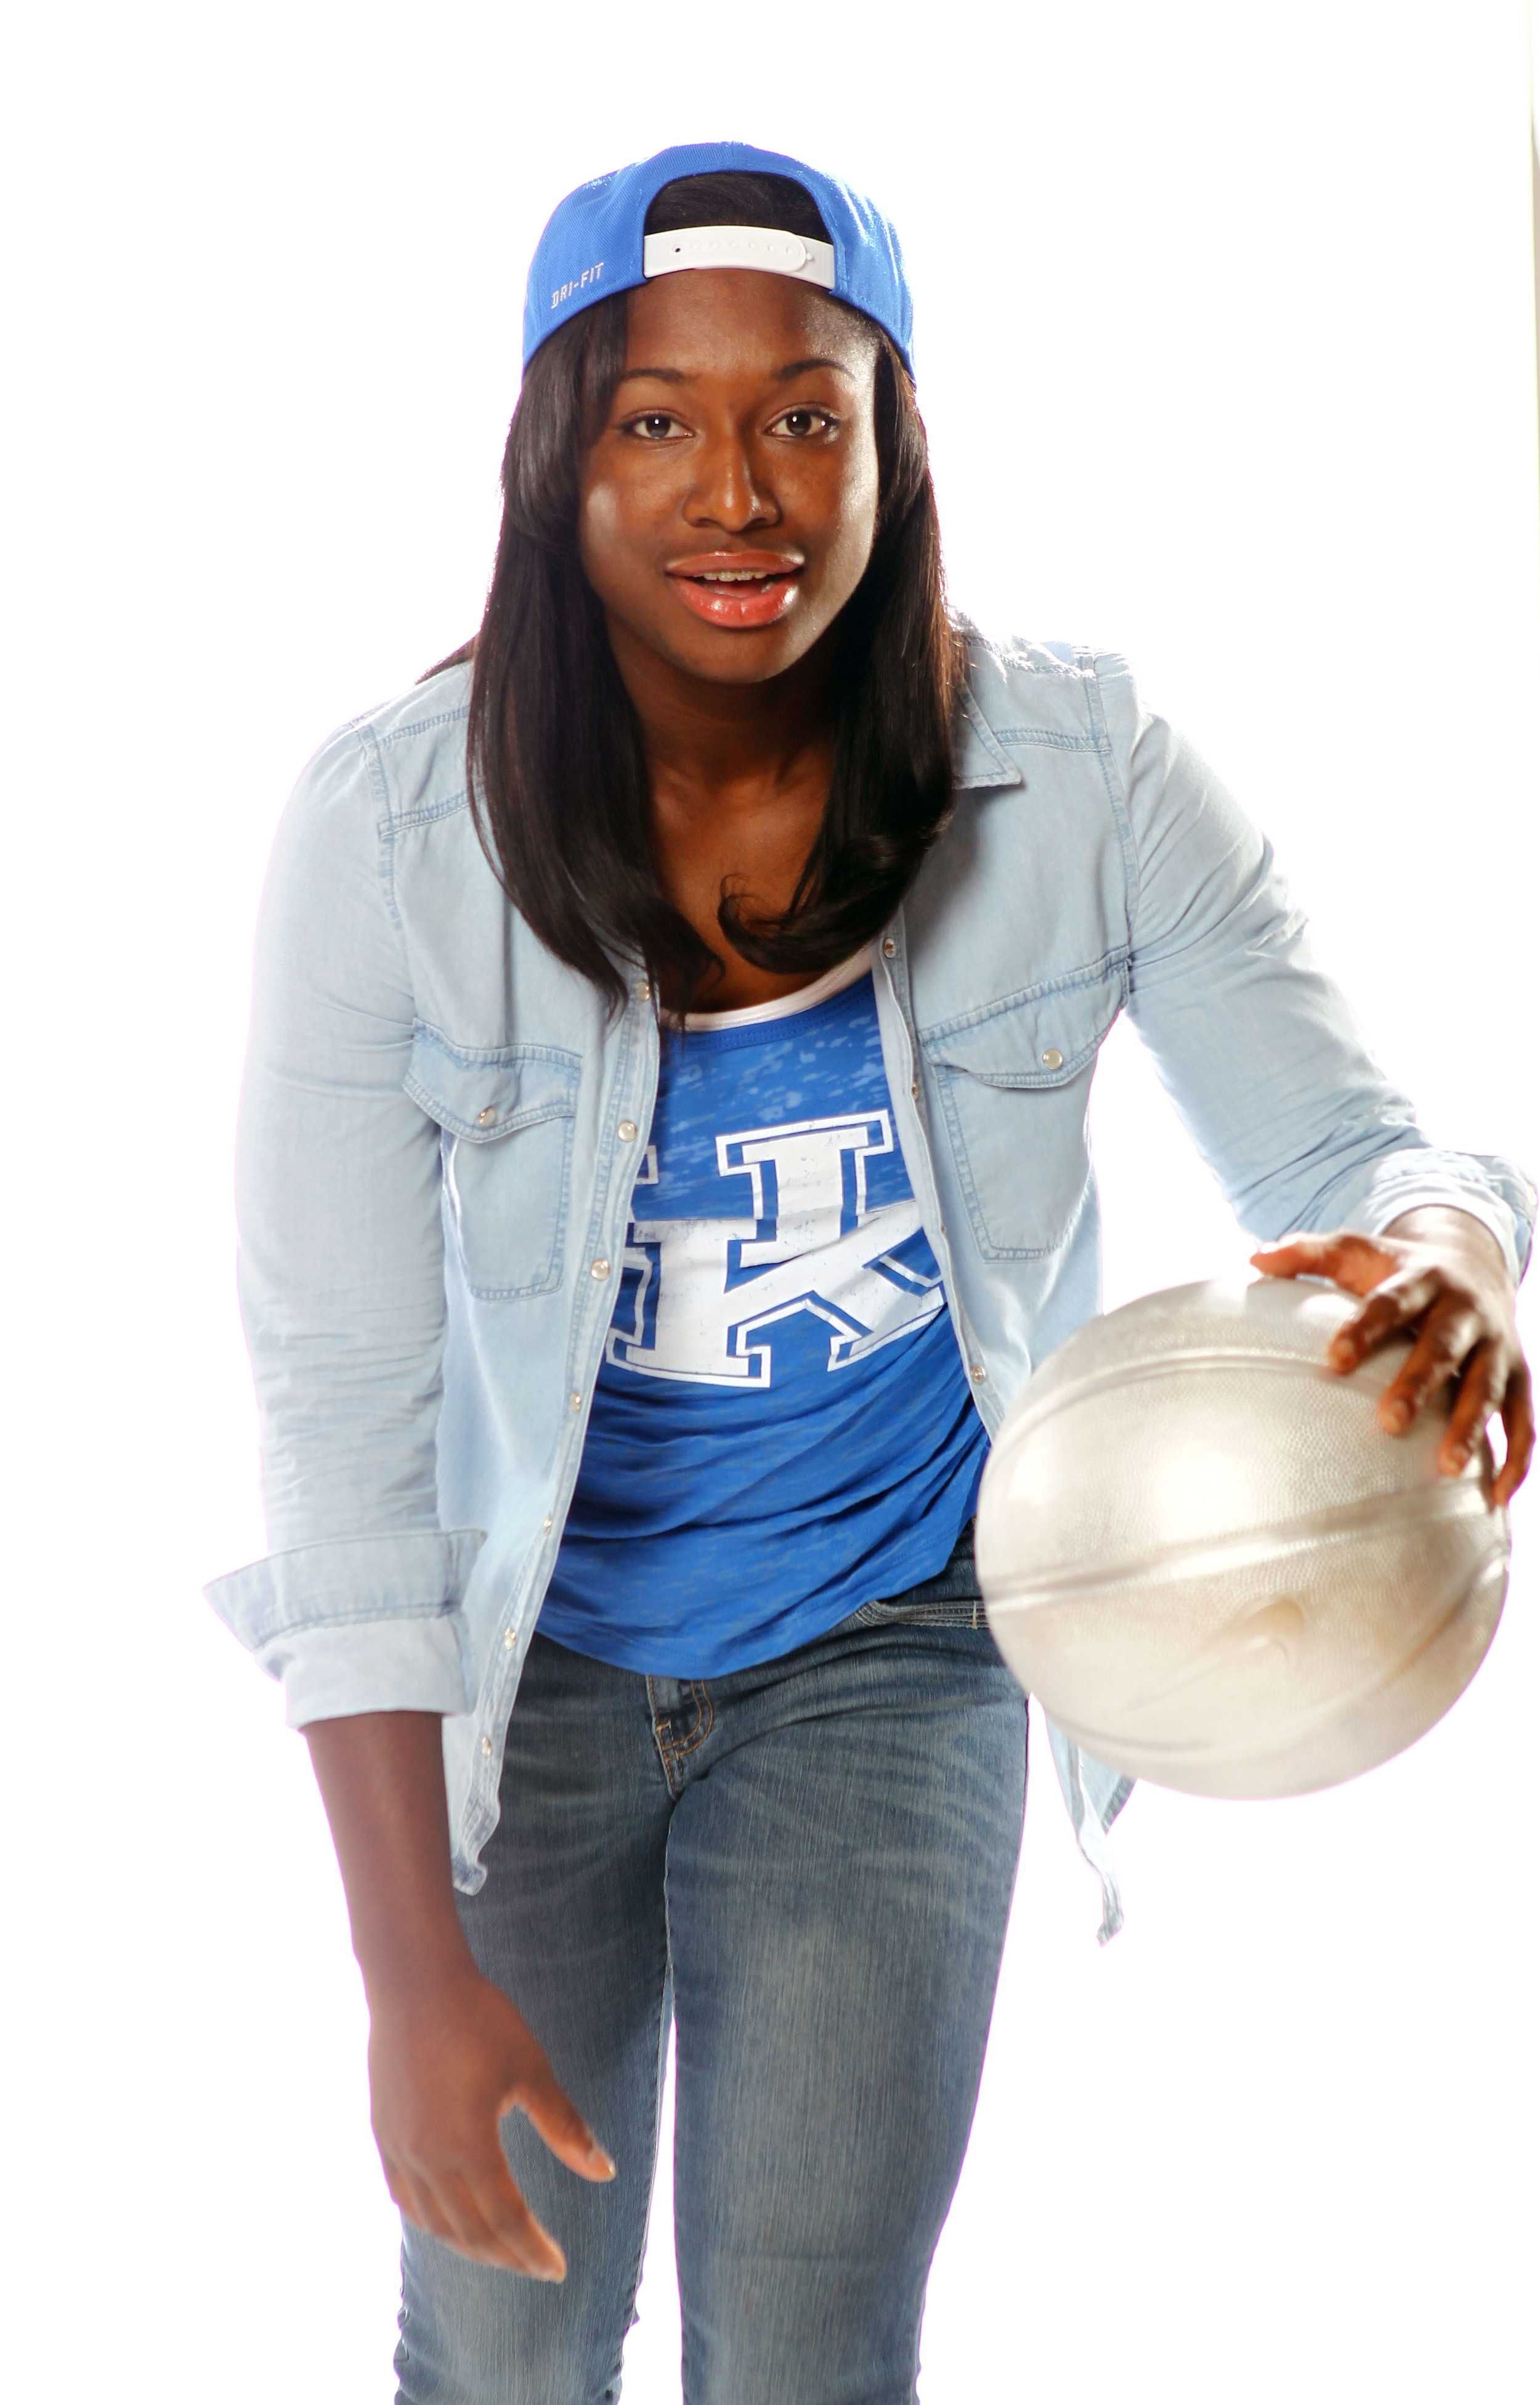 UK_wbball_outfits_093.jpg